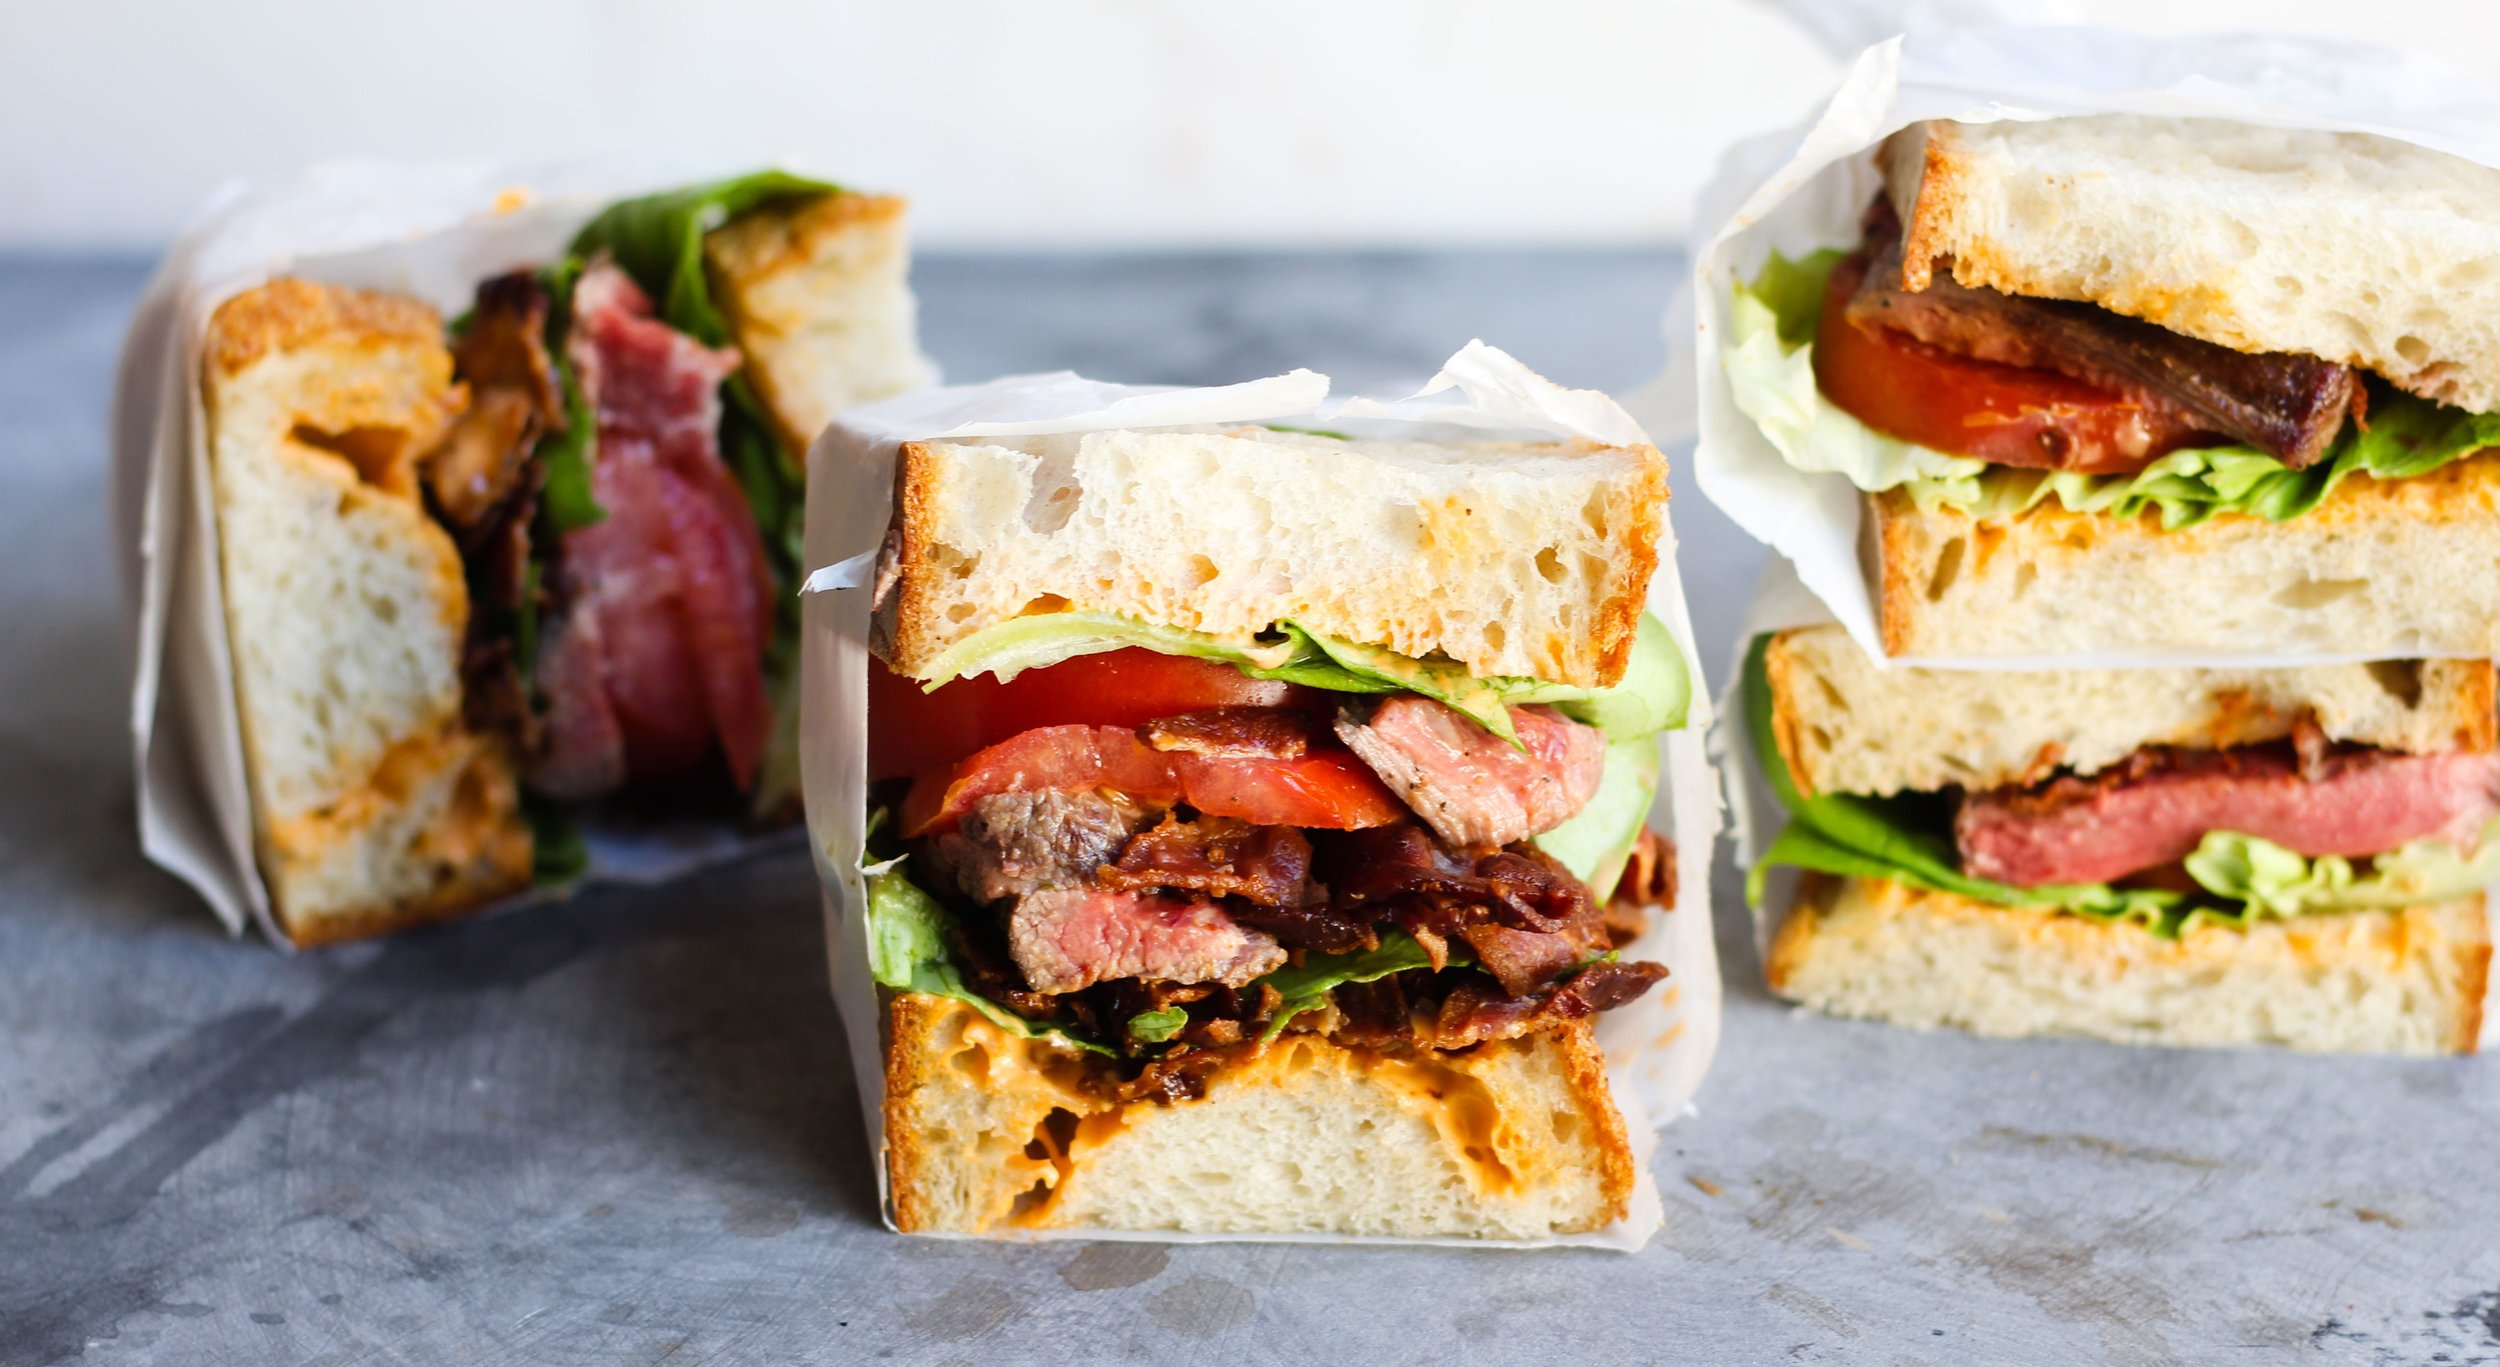 Steak BLT with Spicy Sesame Sauce